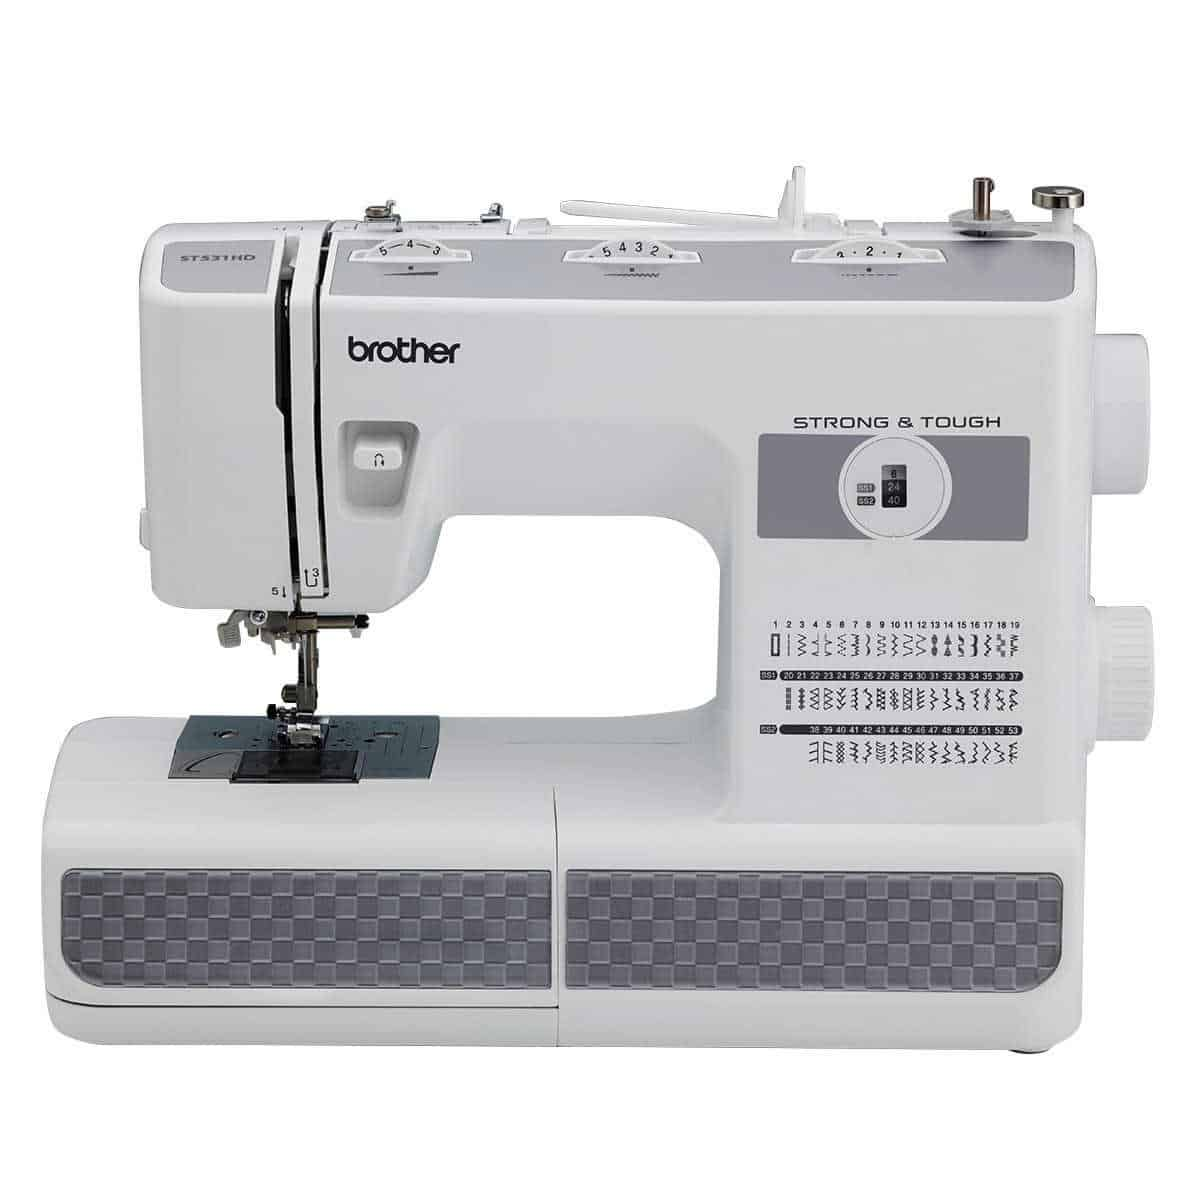 Brother ST531HD Heavy Duty Sewing Machine